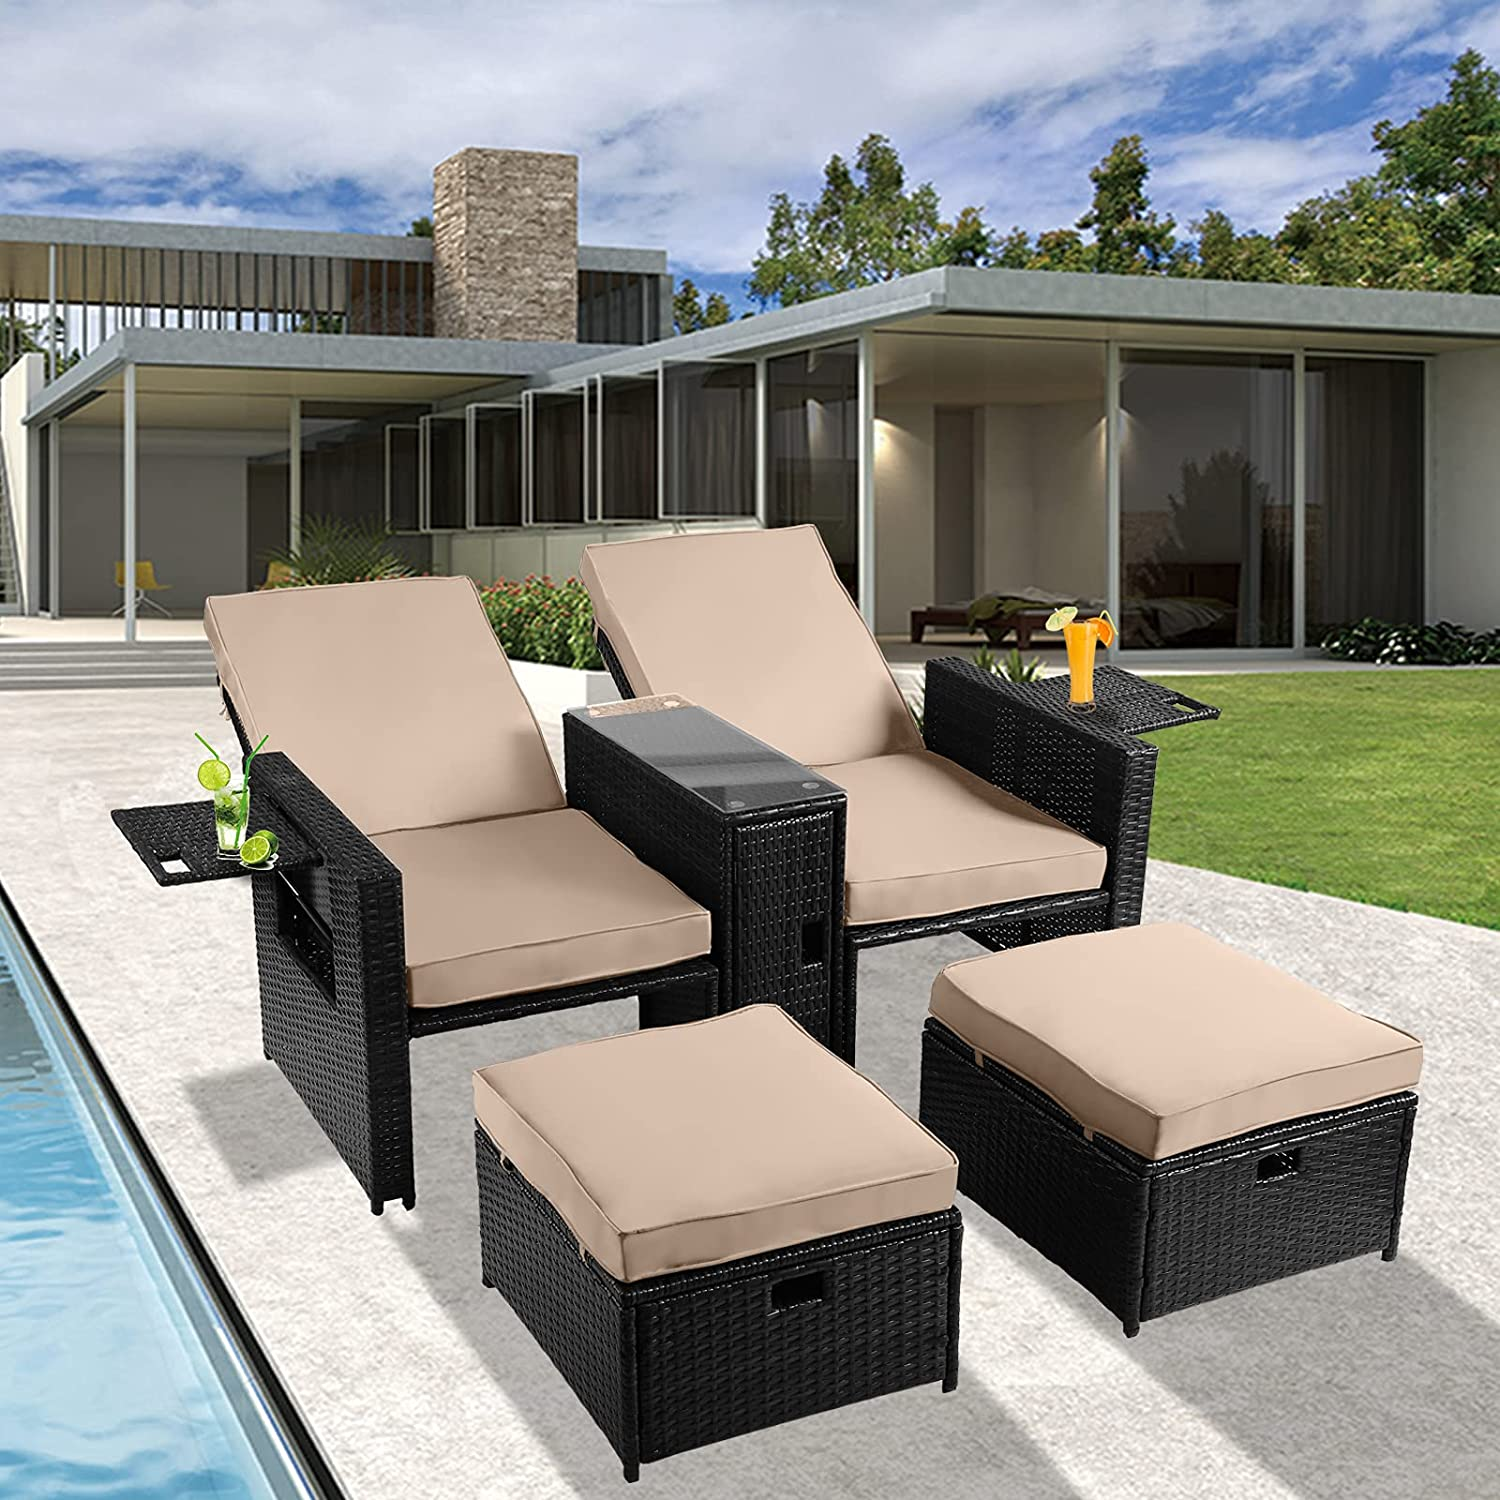 TITIMO 5 Excellent Pieces Max 71% OFF Wicker Patio Furniture - Rattan Outdoor Set Love